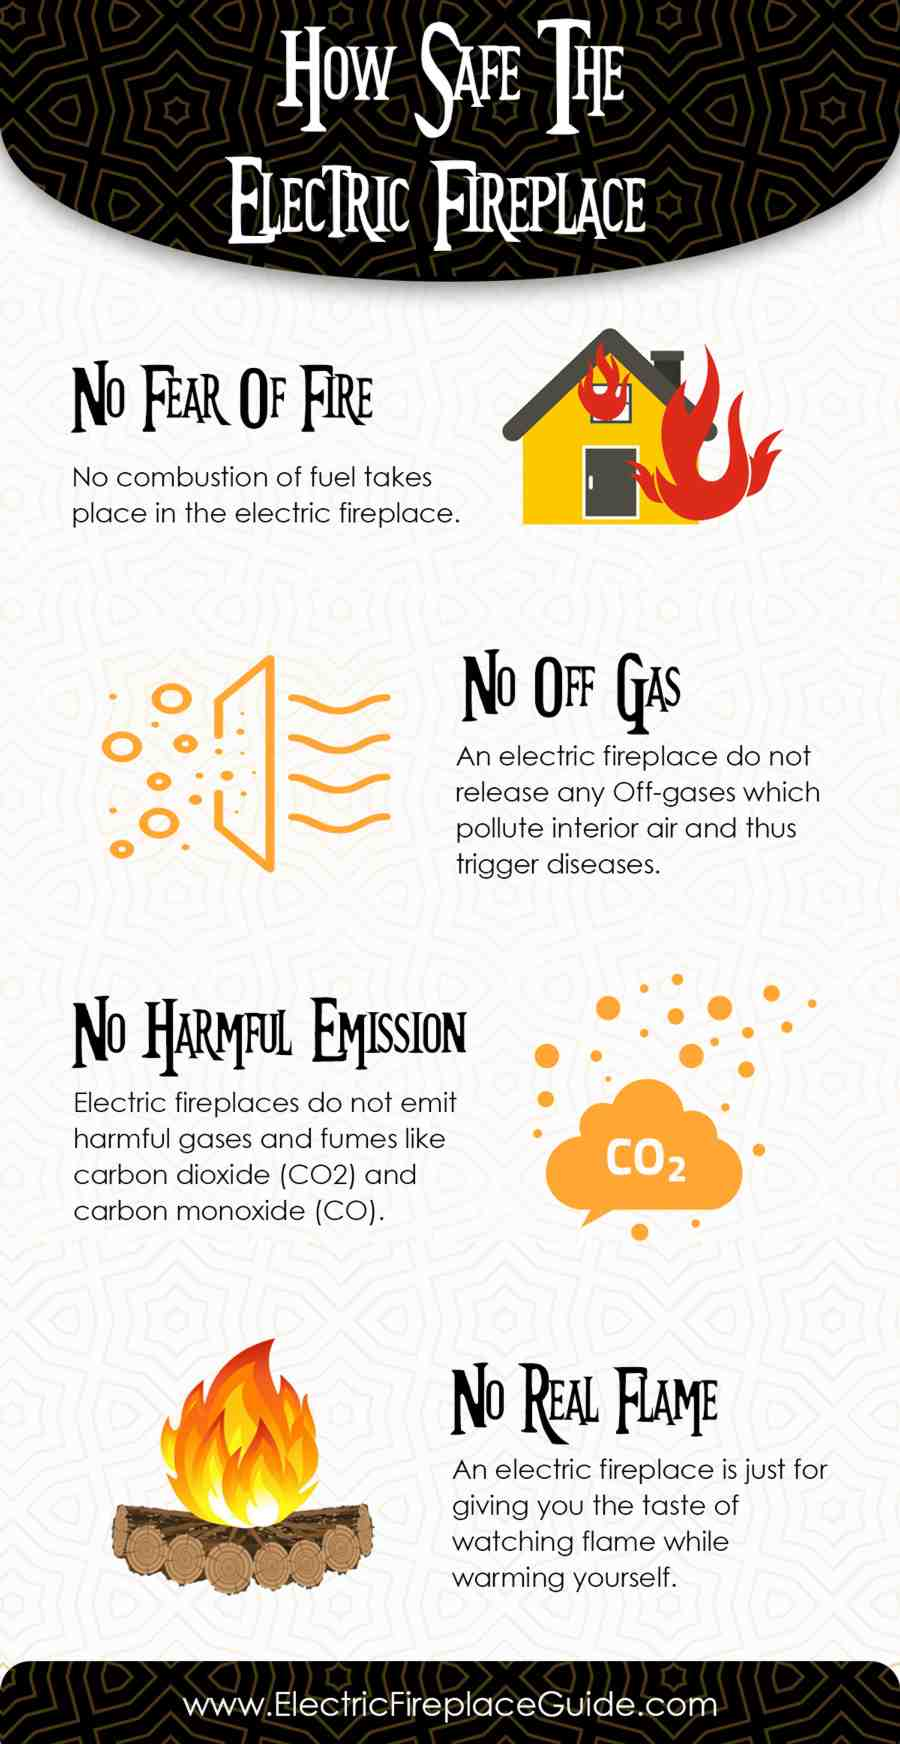 How safe the electric fireplace